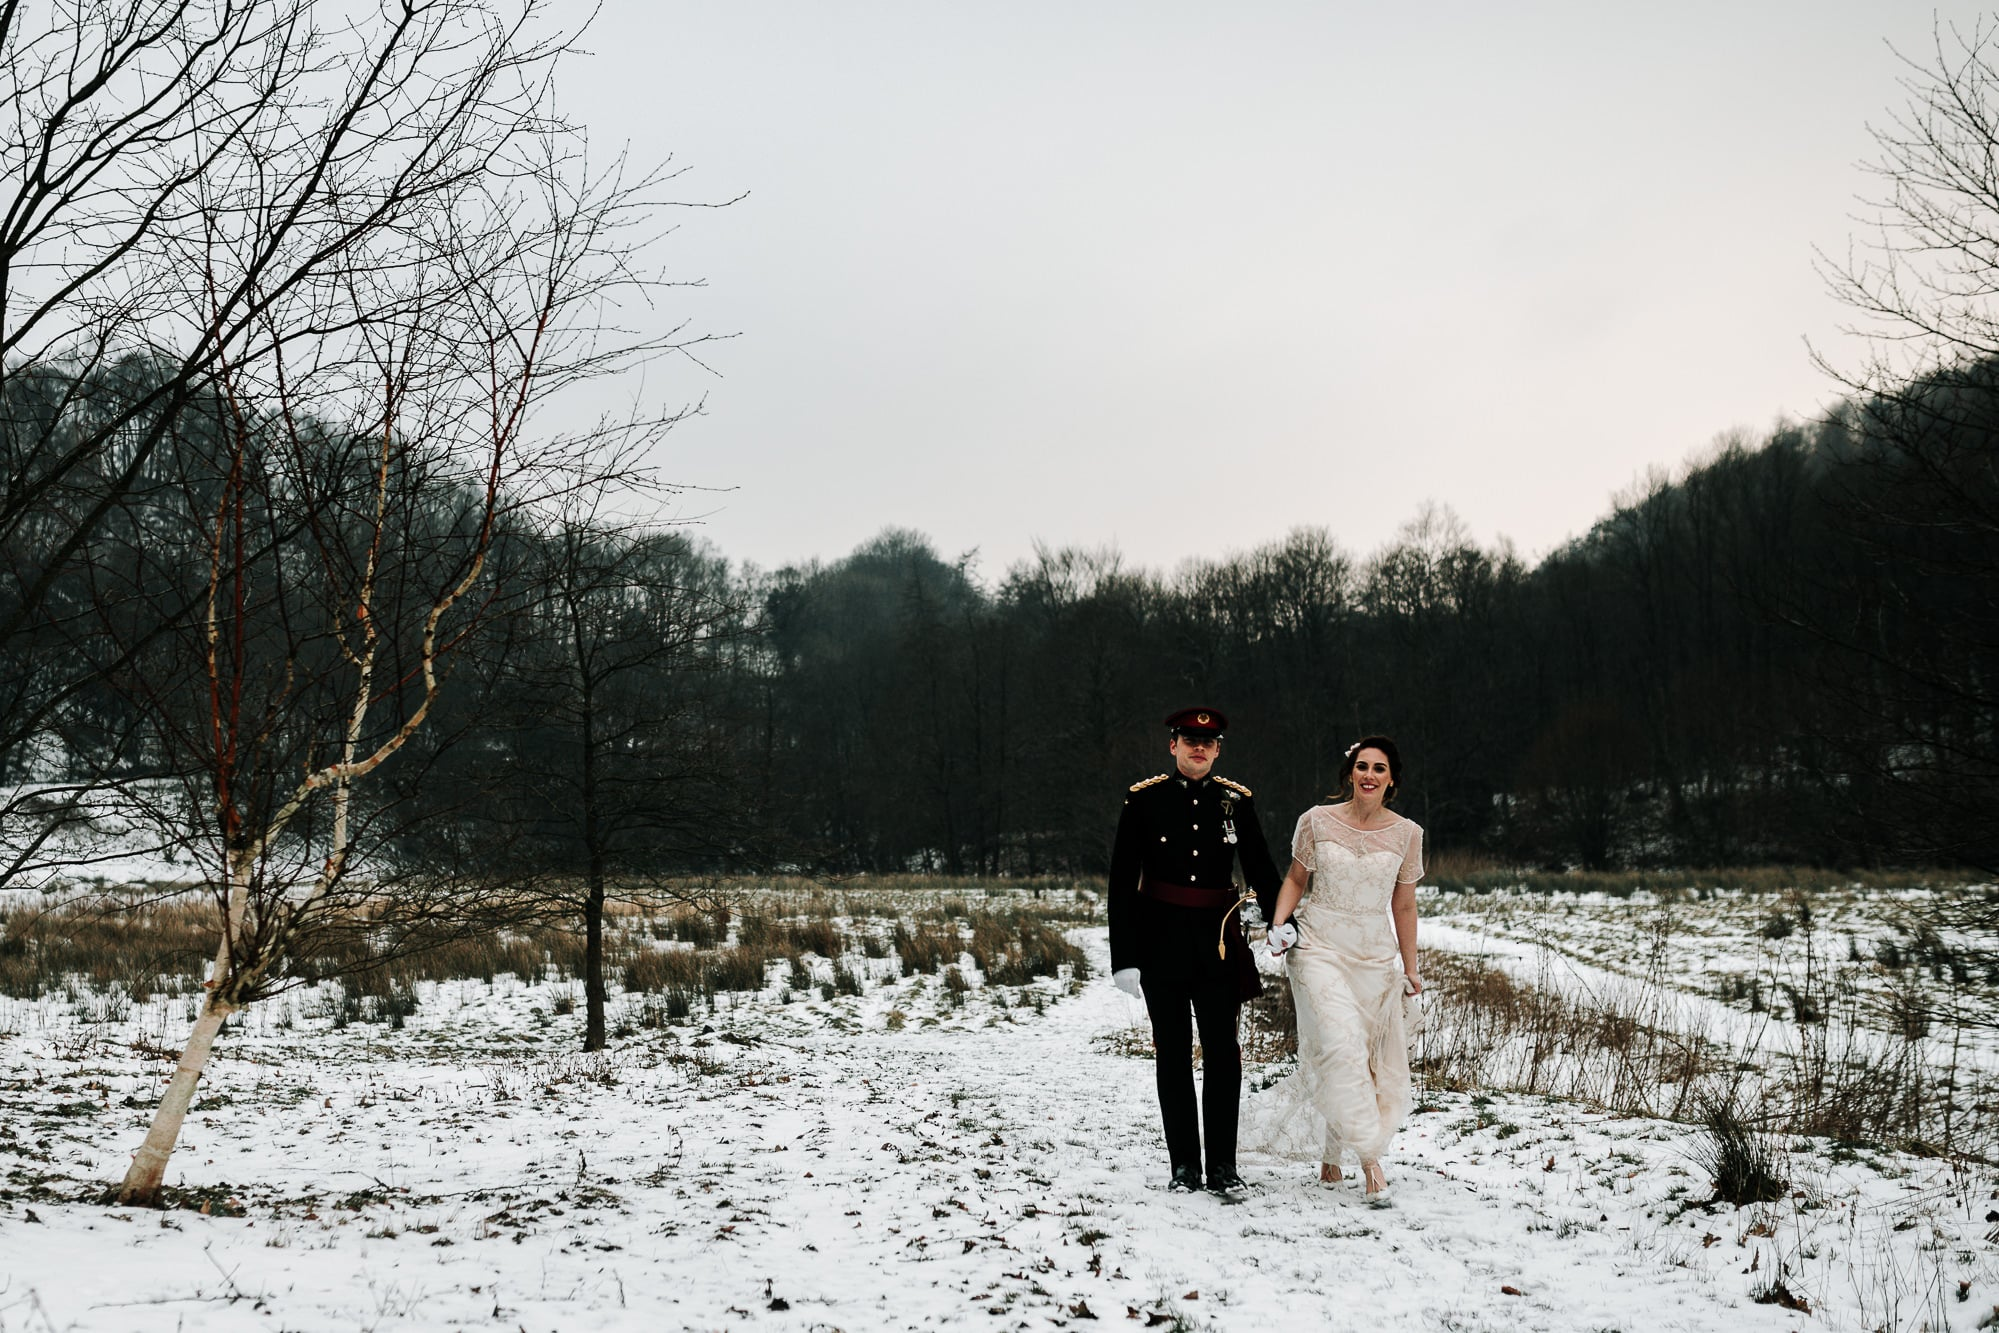 The couple walking in the snow